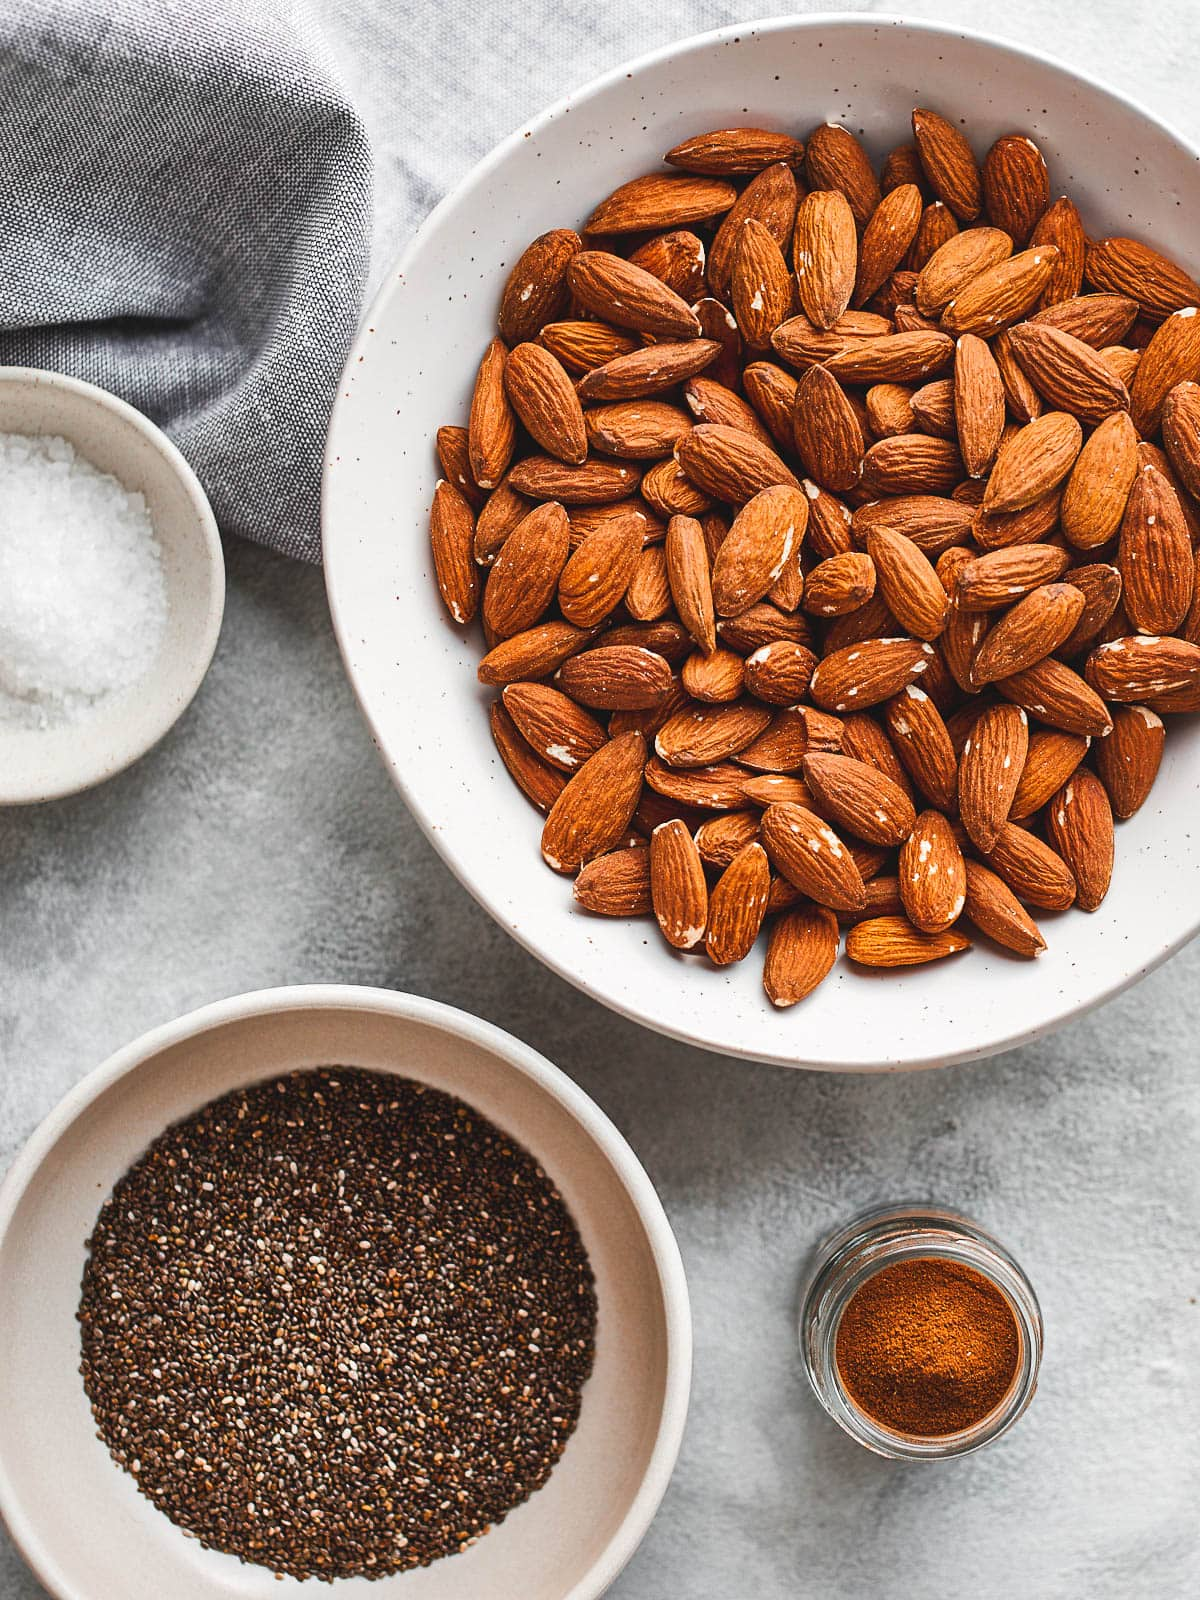 Ingredients for almond chia seed butter